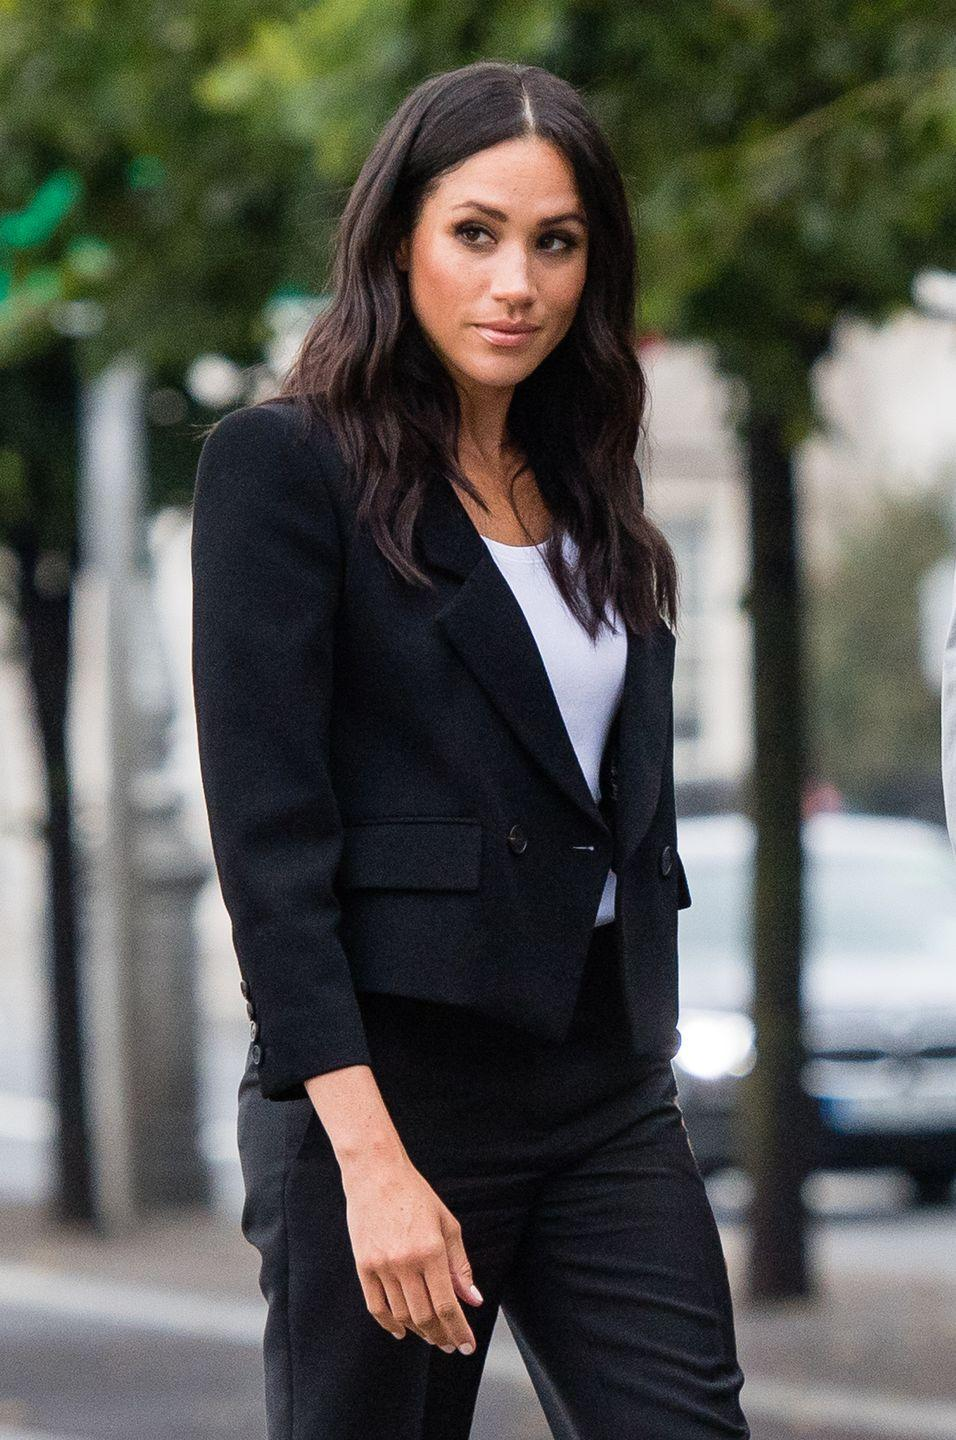 """<p><a href=""""https://www.byrdie.co.uk/meghan-markle-low-bun--5b55b3147419a/slide3"""" rel=""""nofollow noopener"""" target=""""_blank"""" data-ylk=""""slk:According to Byrdie UK"""" class=""""link rapid-noclick-resp"""">According to Byrdie UK</a>, """"a low bun is like a form of damage control. Markle can wear one all day and then quickly unwind it—letting her loose waves fall beyond her shoulders, ready for the evening's function."""" </p>"""